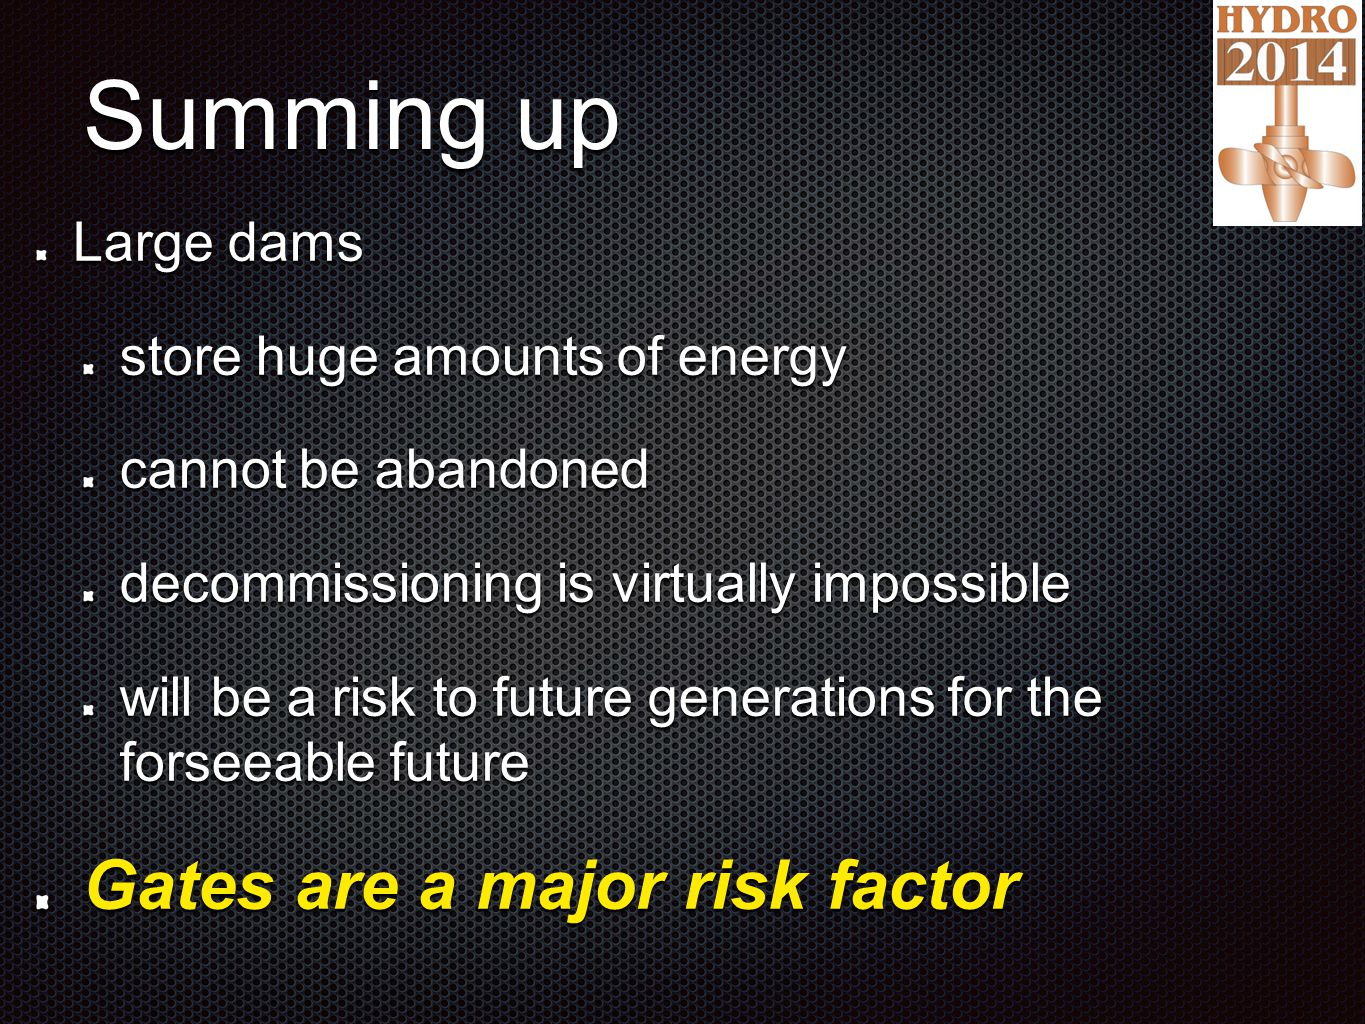 Summing up Large dams store huge amounts of energy cannot be abandoned decommissioning is virtually impossible will be a risk to future generations for the forseeable future Gates are a major risk factor